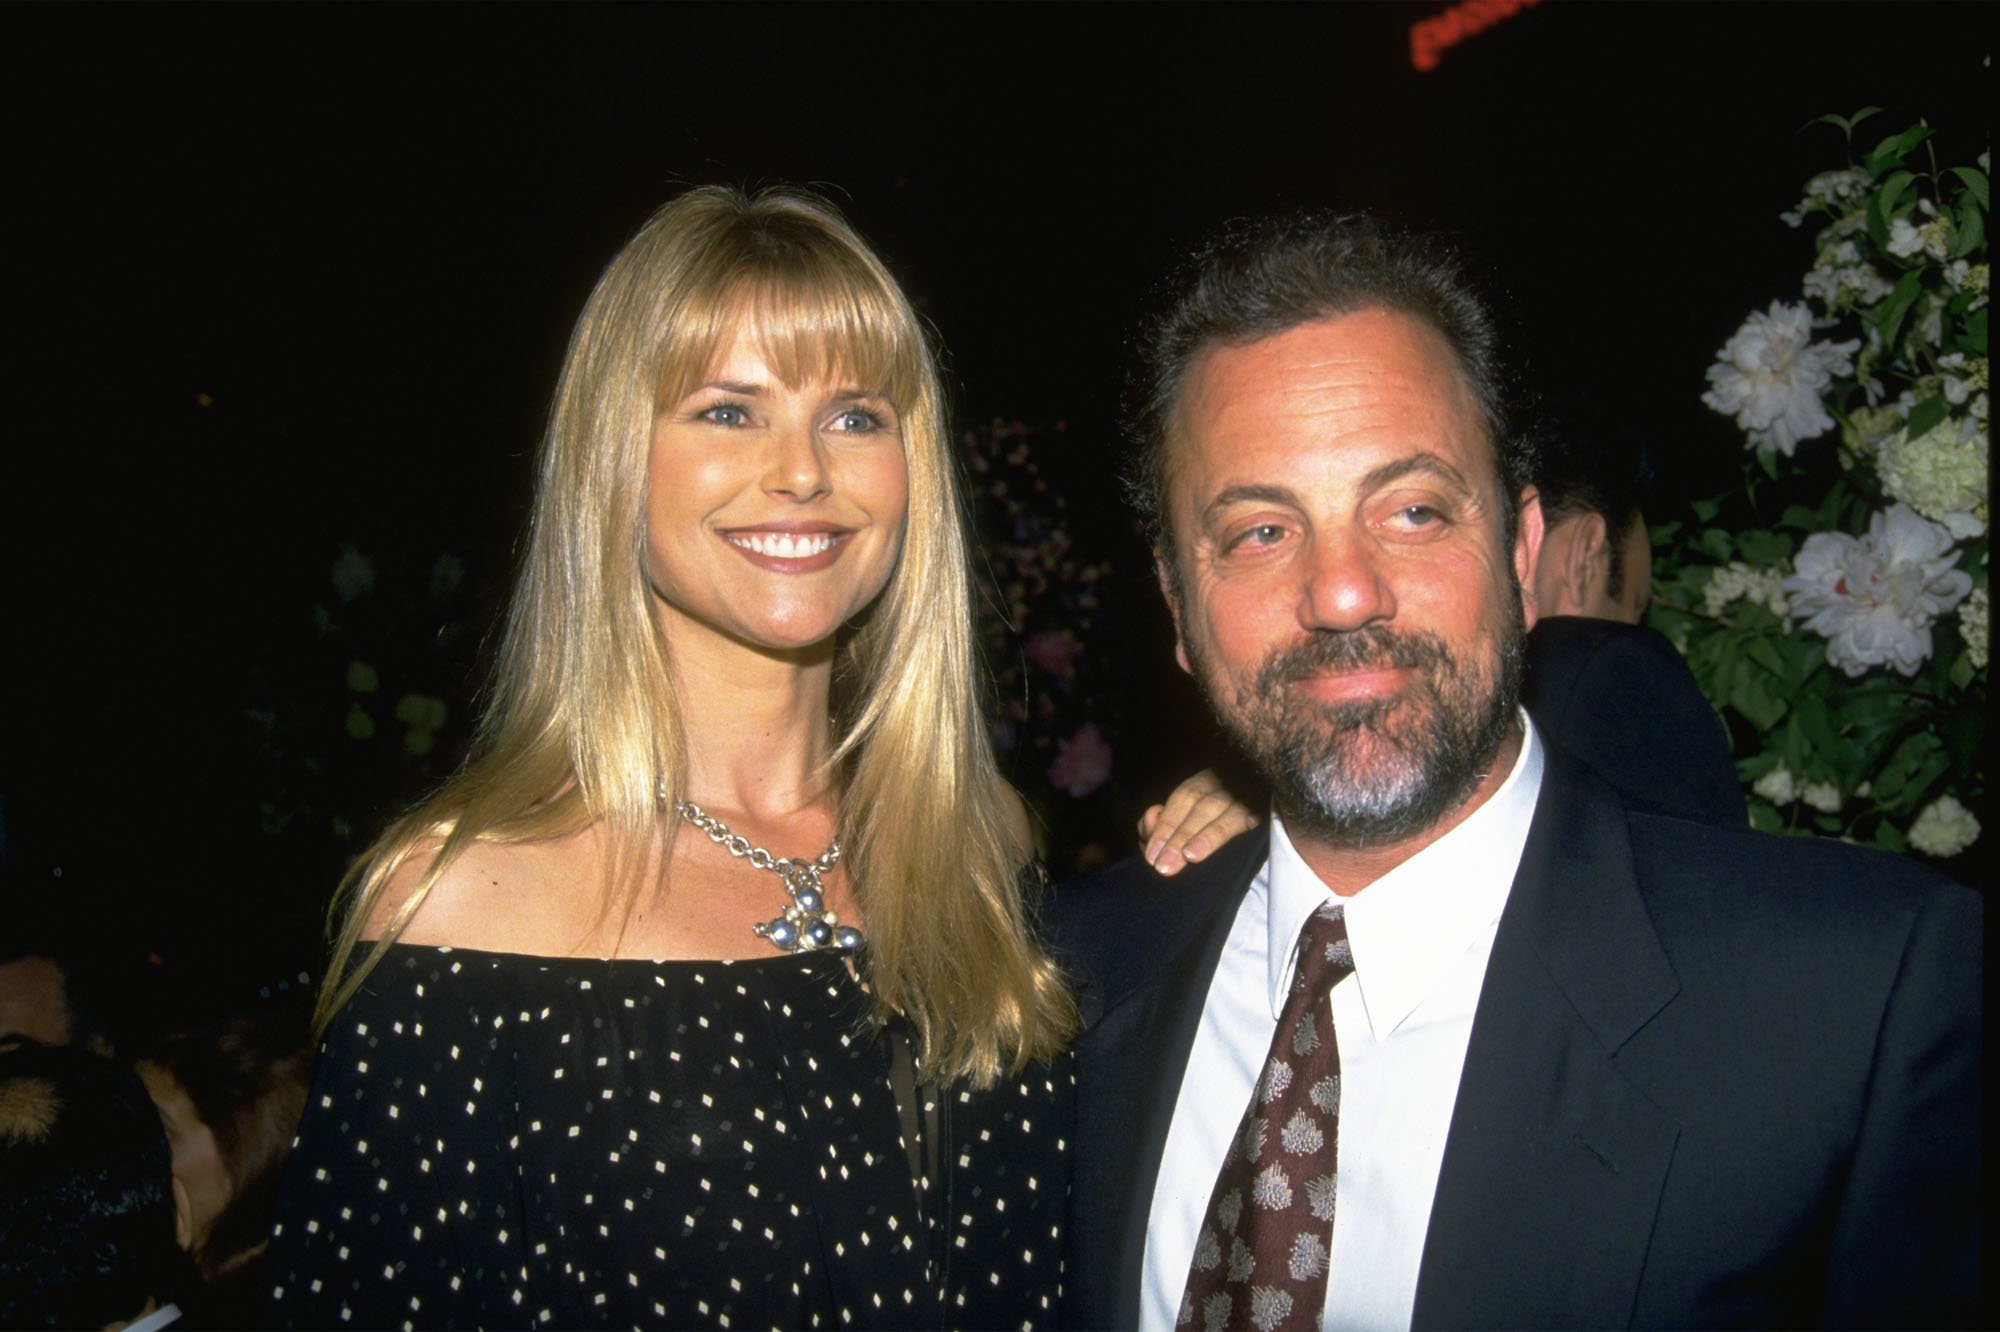 Image Credits: Getty Images / Diane Freed / Liaison | Billy Joel and Christie Brinkley, who are now divorced, stand together in New York City in this undated photo.